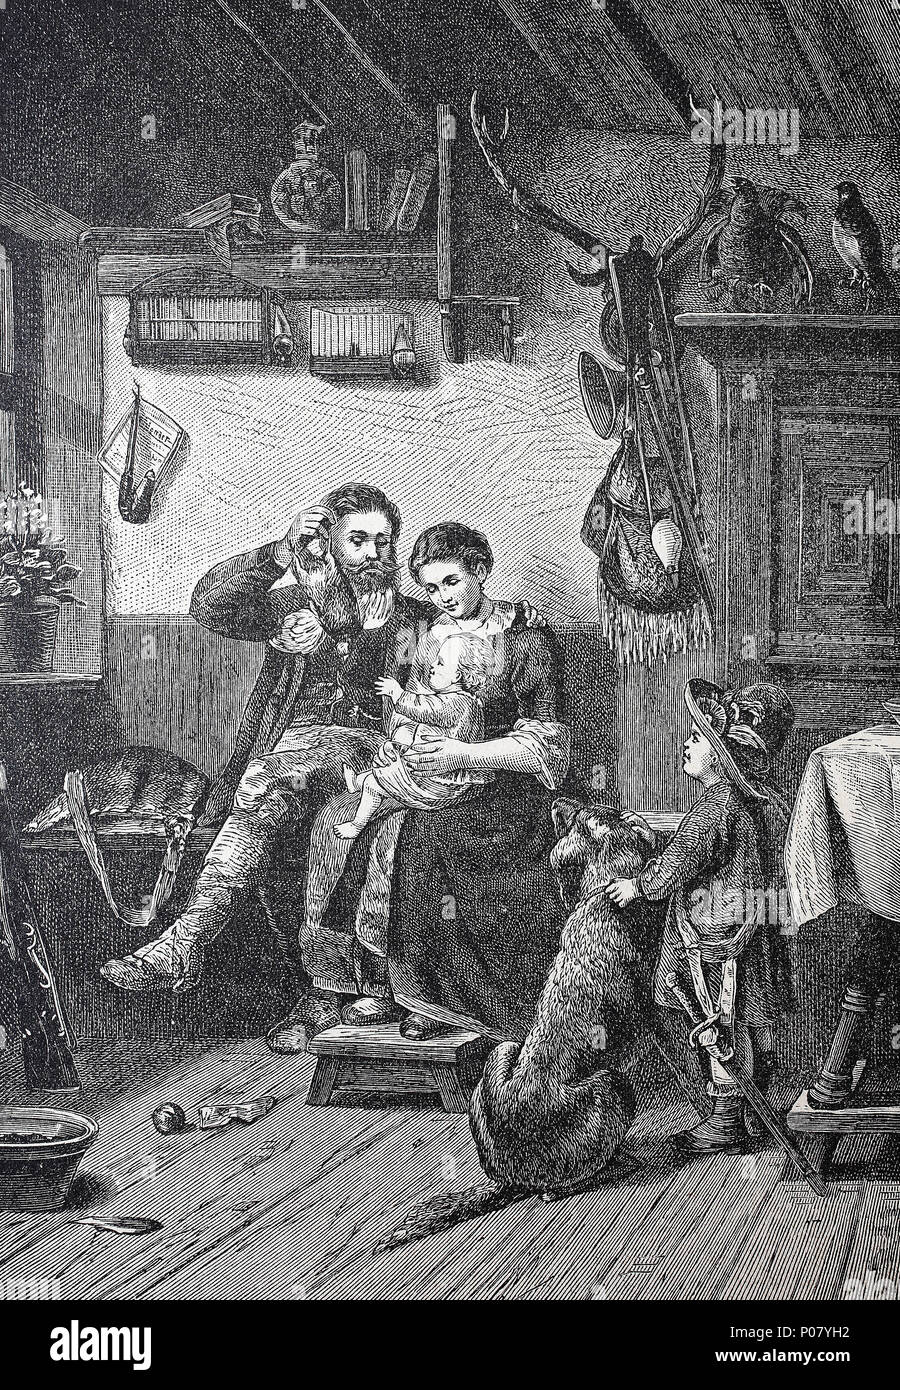 Return of the hunter after the hunt to his family, Austria, Heimkehr des Jägers nach der Jagd zu seiner Familie, Österreich, digital improved reproduction of an original print from the year 1881 - Stock Image